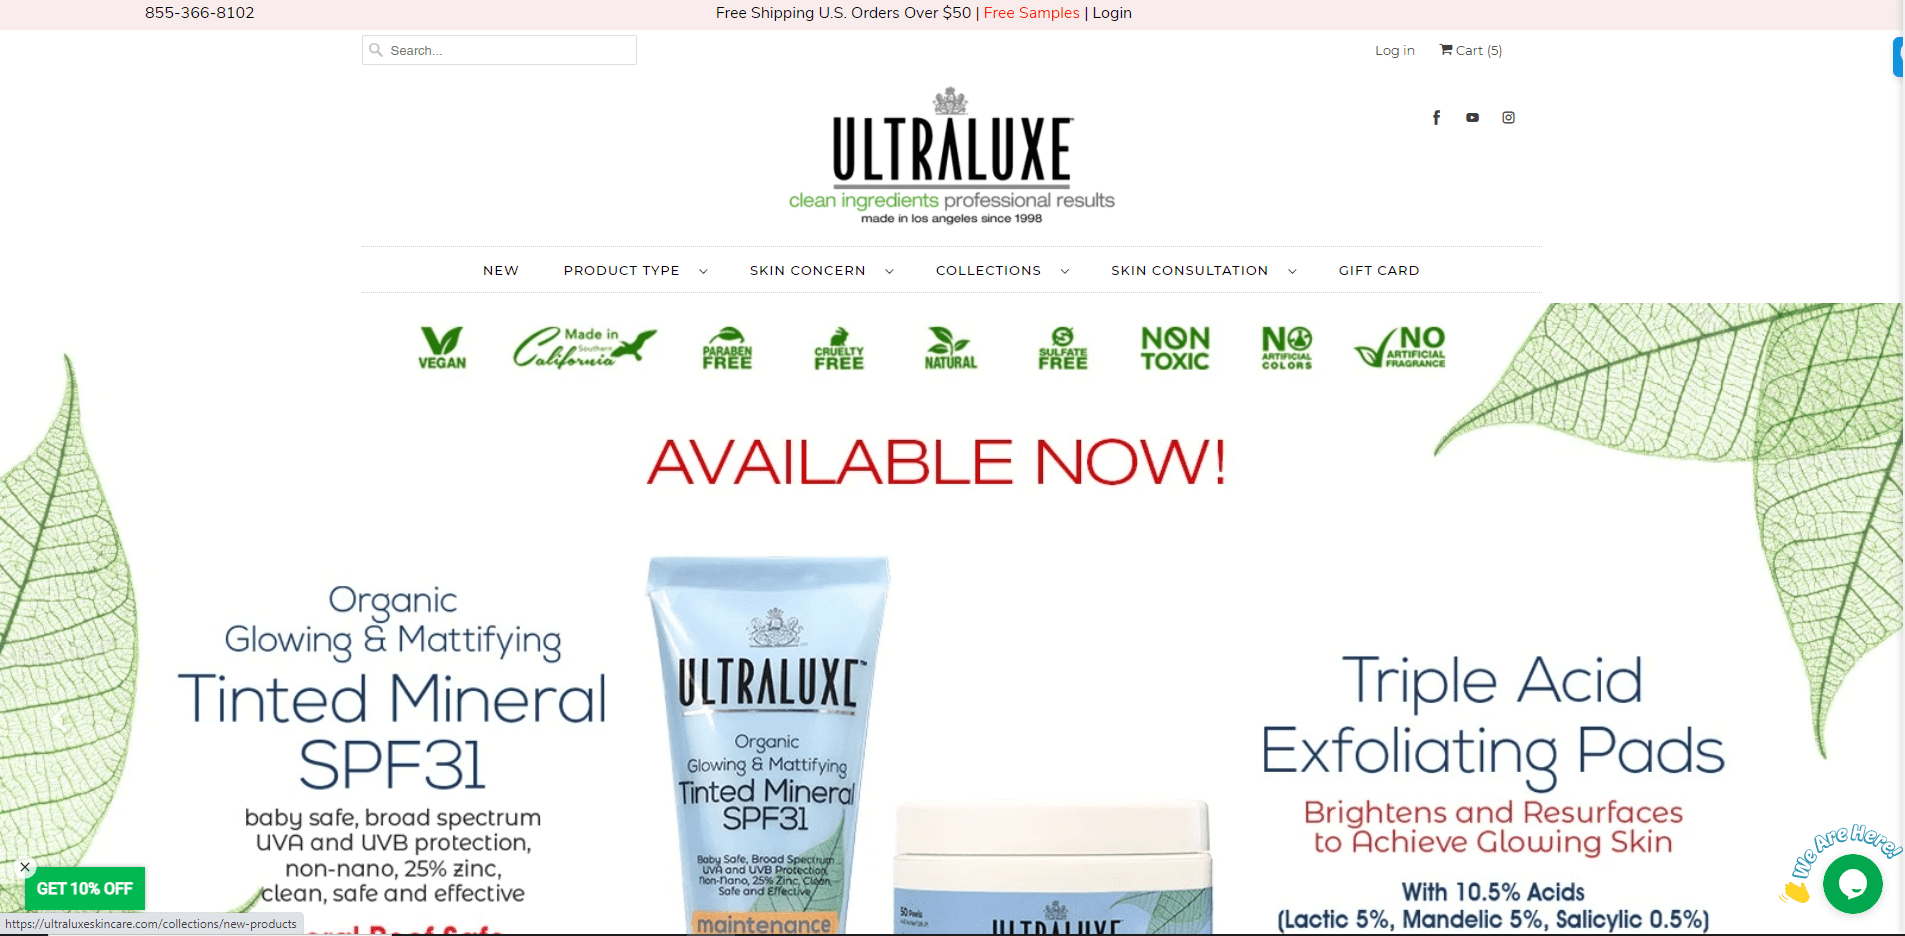 ULTRALUXE.com portfolio website